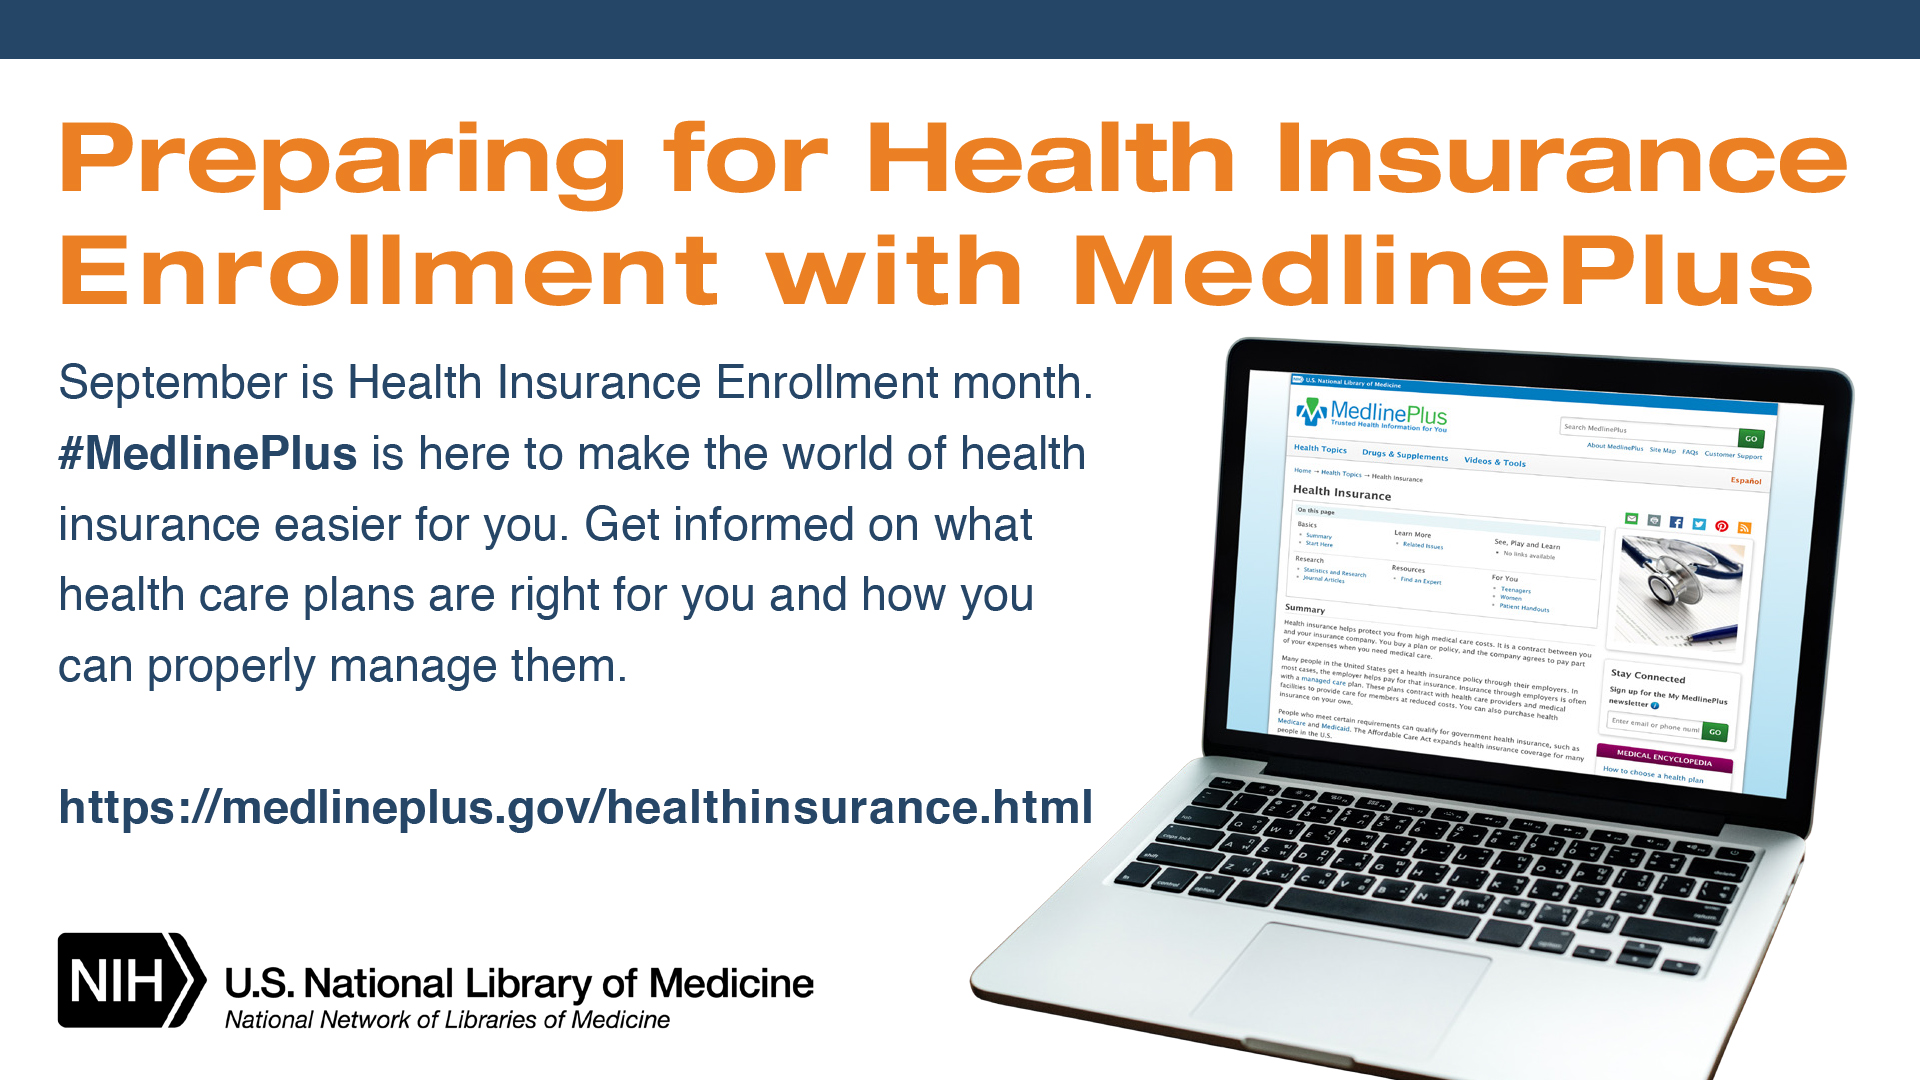 A white background with an image of a laptop displaying the MedlinePlus webpage. Text reads: Preparing for Health Insurance Enrollment with MedlinePlus. September is Health Insurance Enrollment Month. #MedlinePlus is here to make the world of health insurance easier for you. Get informed on what health care plans are right for you and how you can properly manage them. https://medlineplus.gov/healthinsurance.html